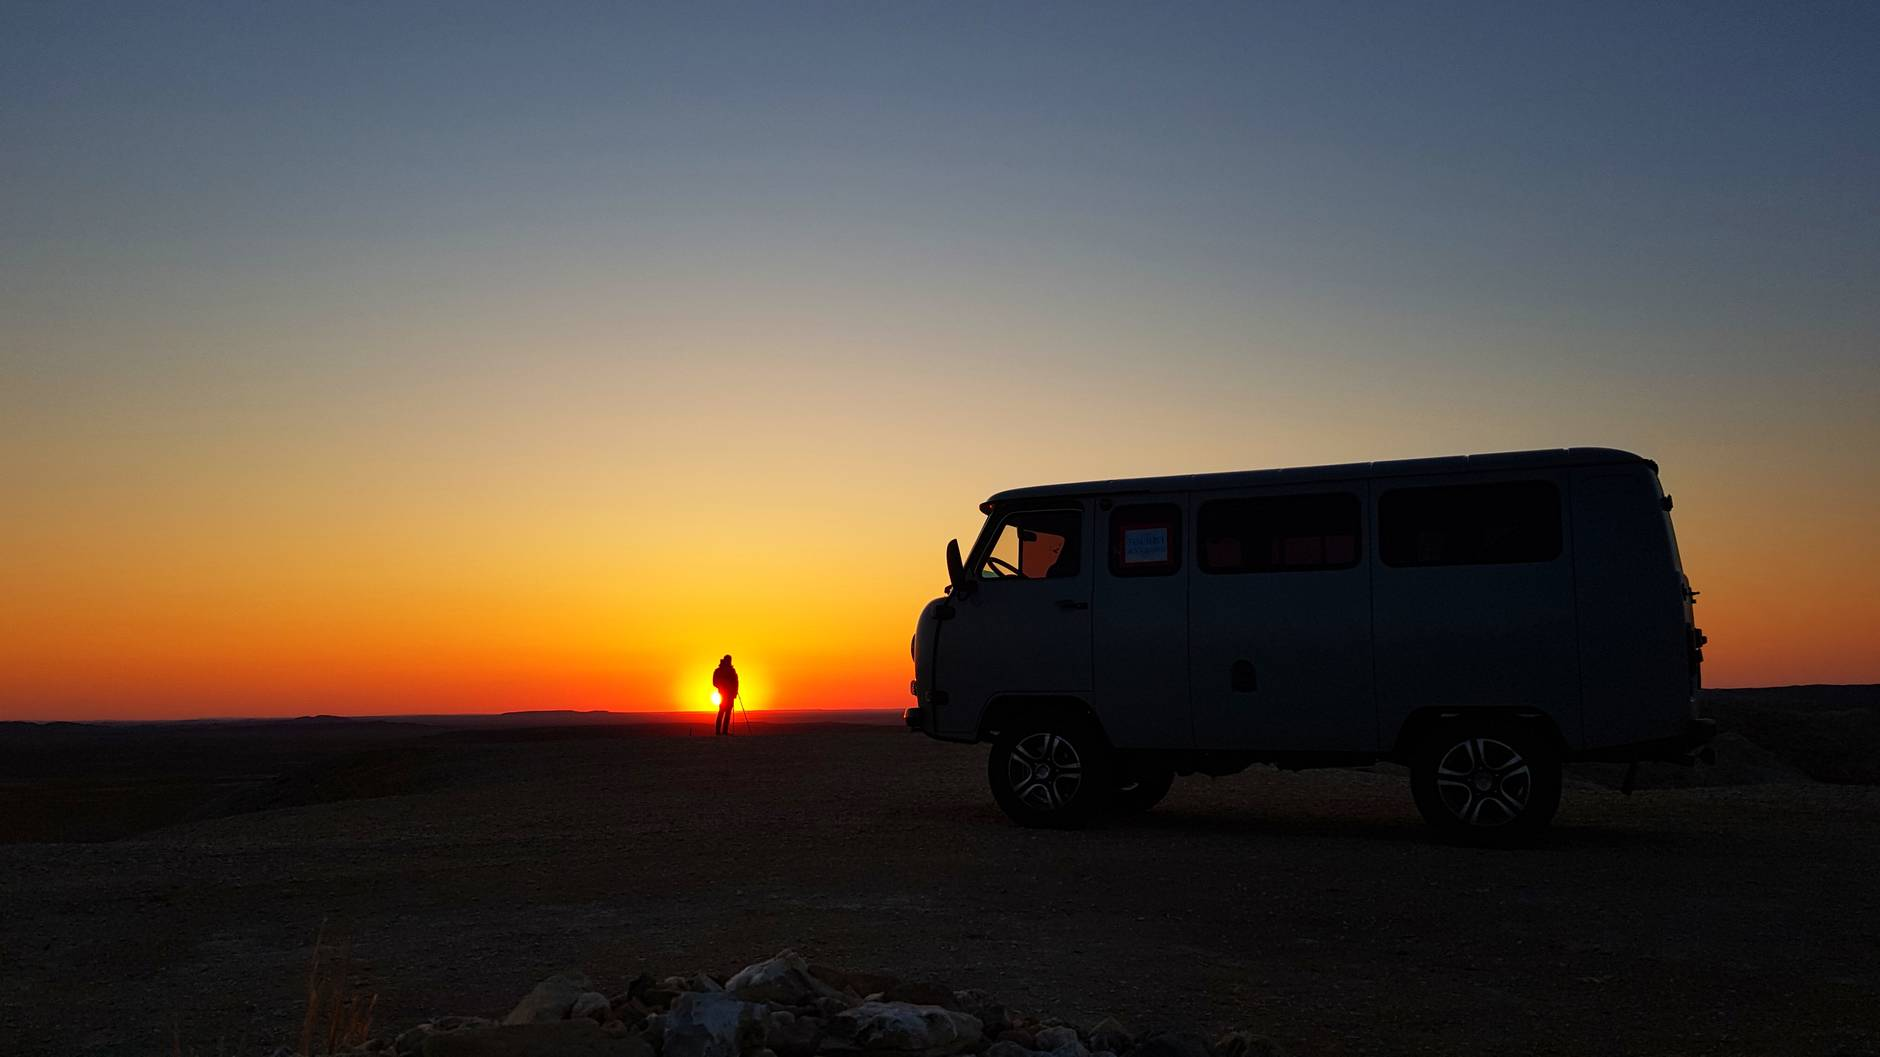 blue enclose van during sunset scenery